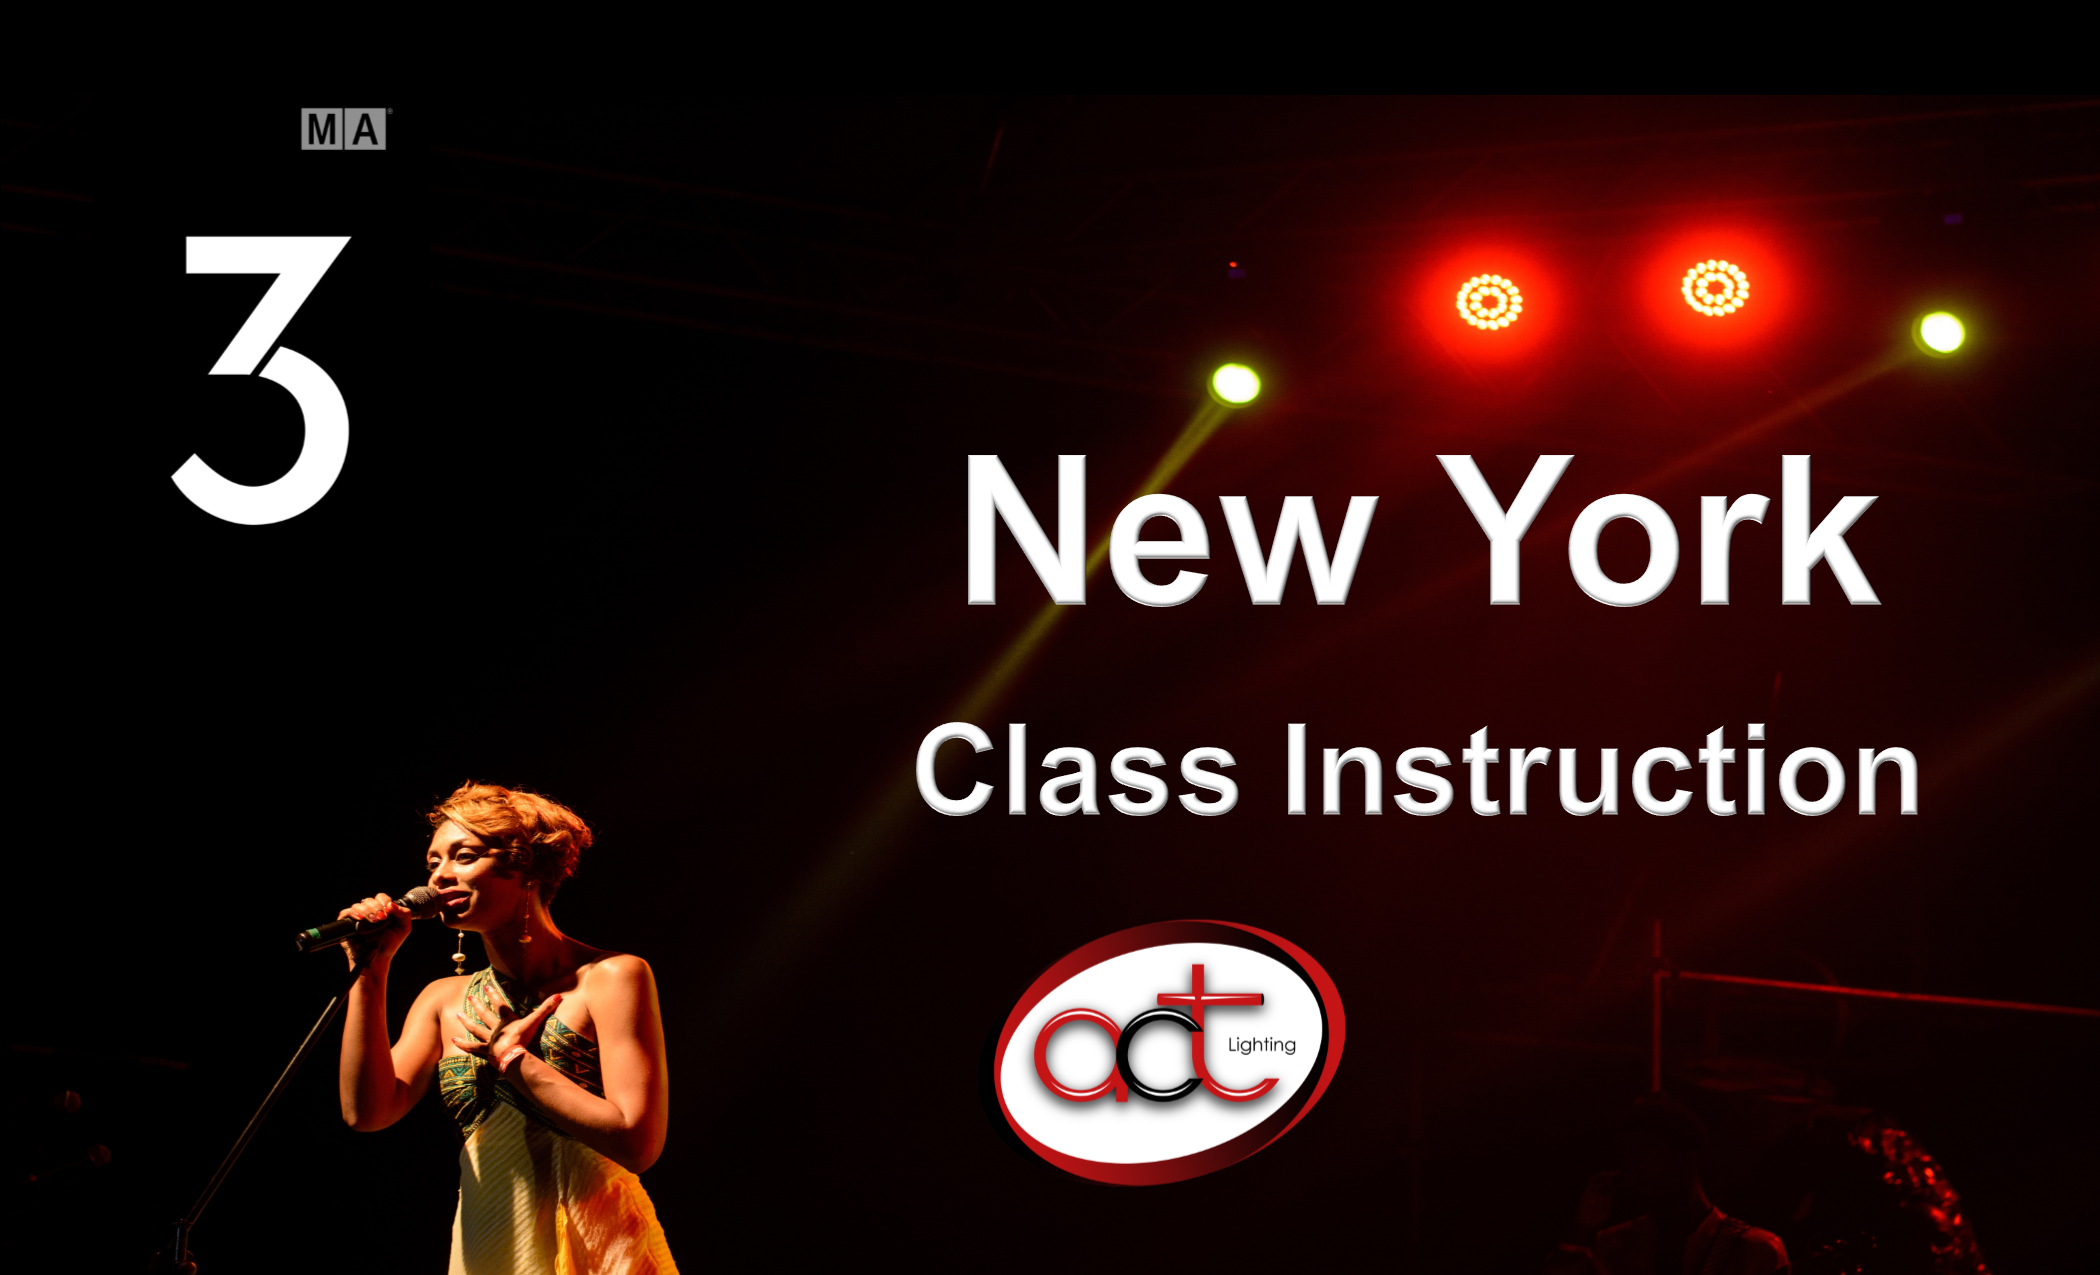 New York - Class Instruction